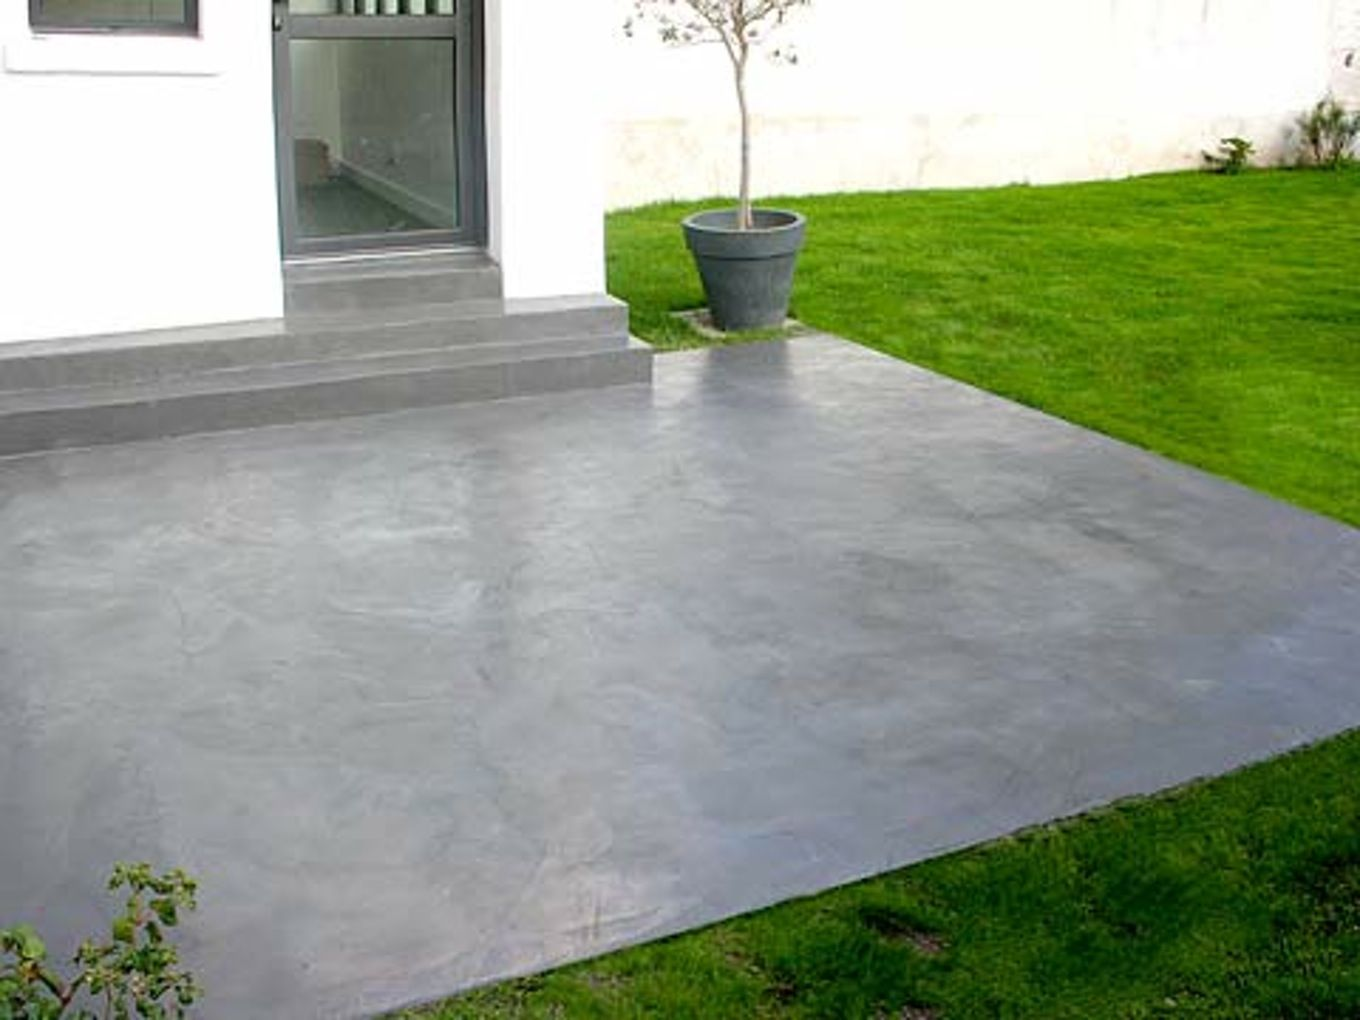 Incredible decoration peindre beton exterieur peinture for Peinture sol terrasse